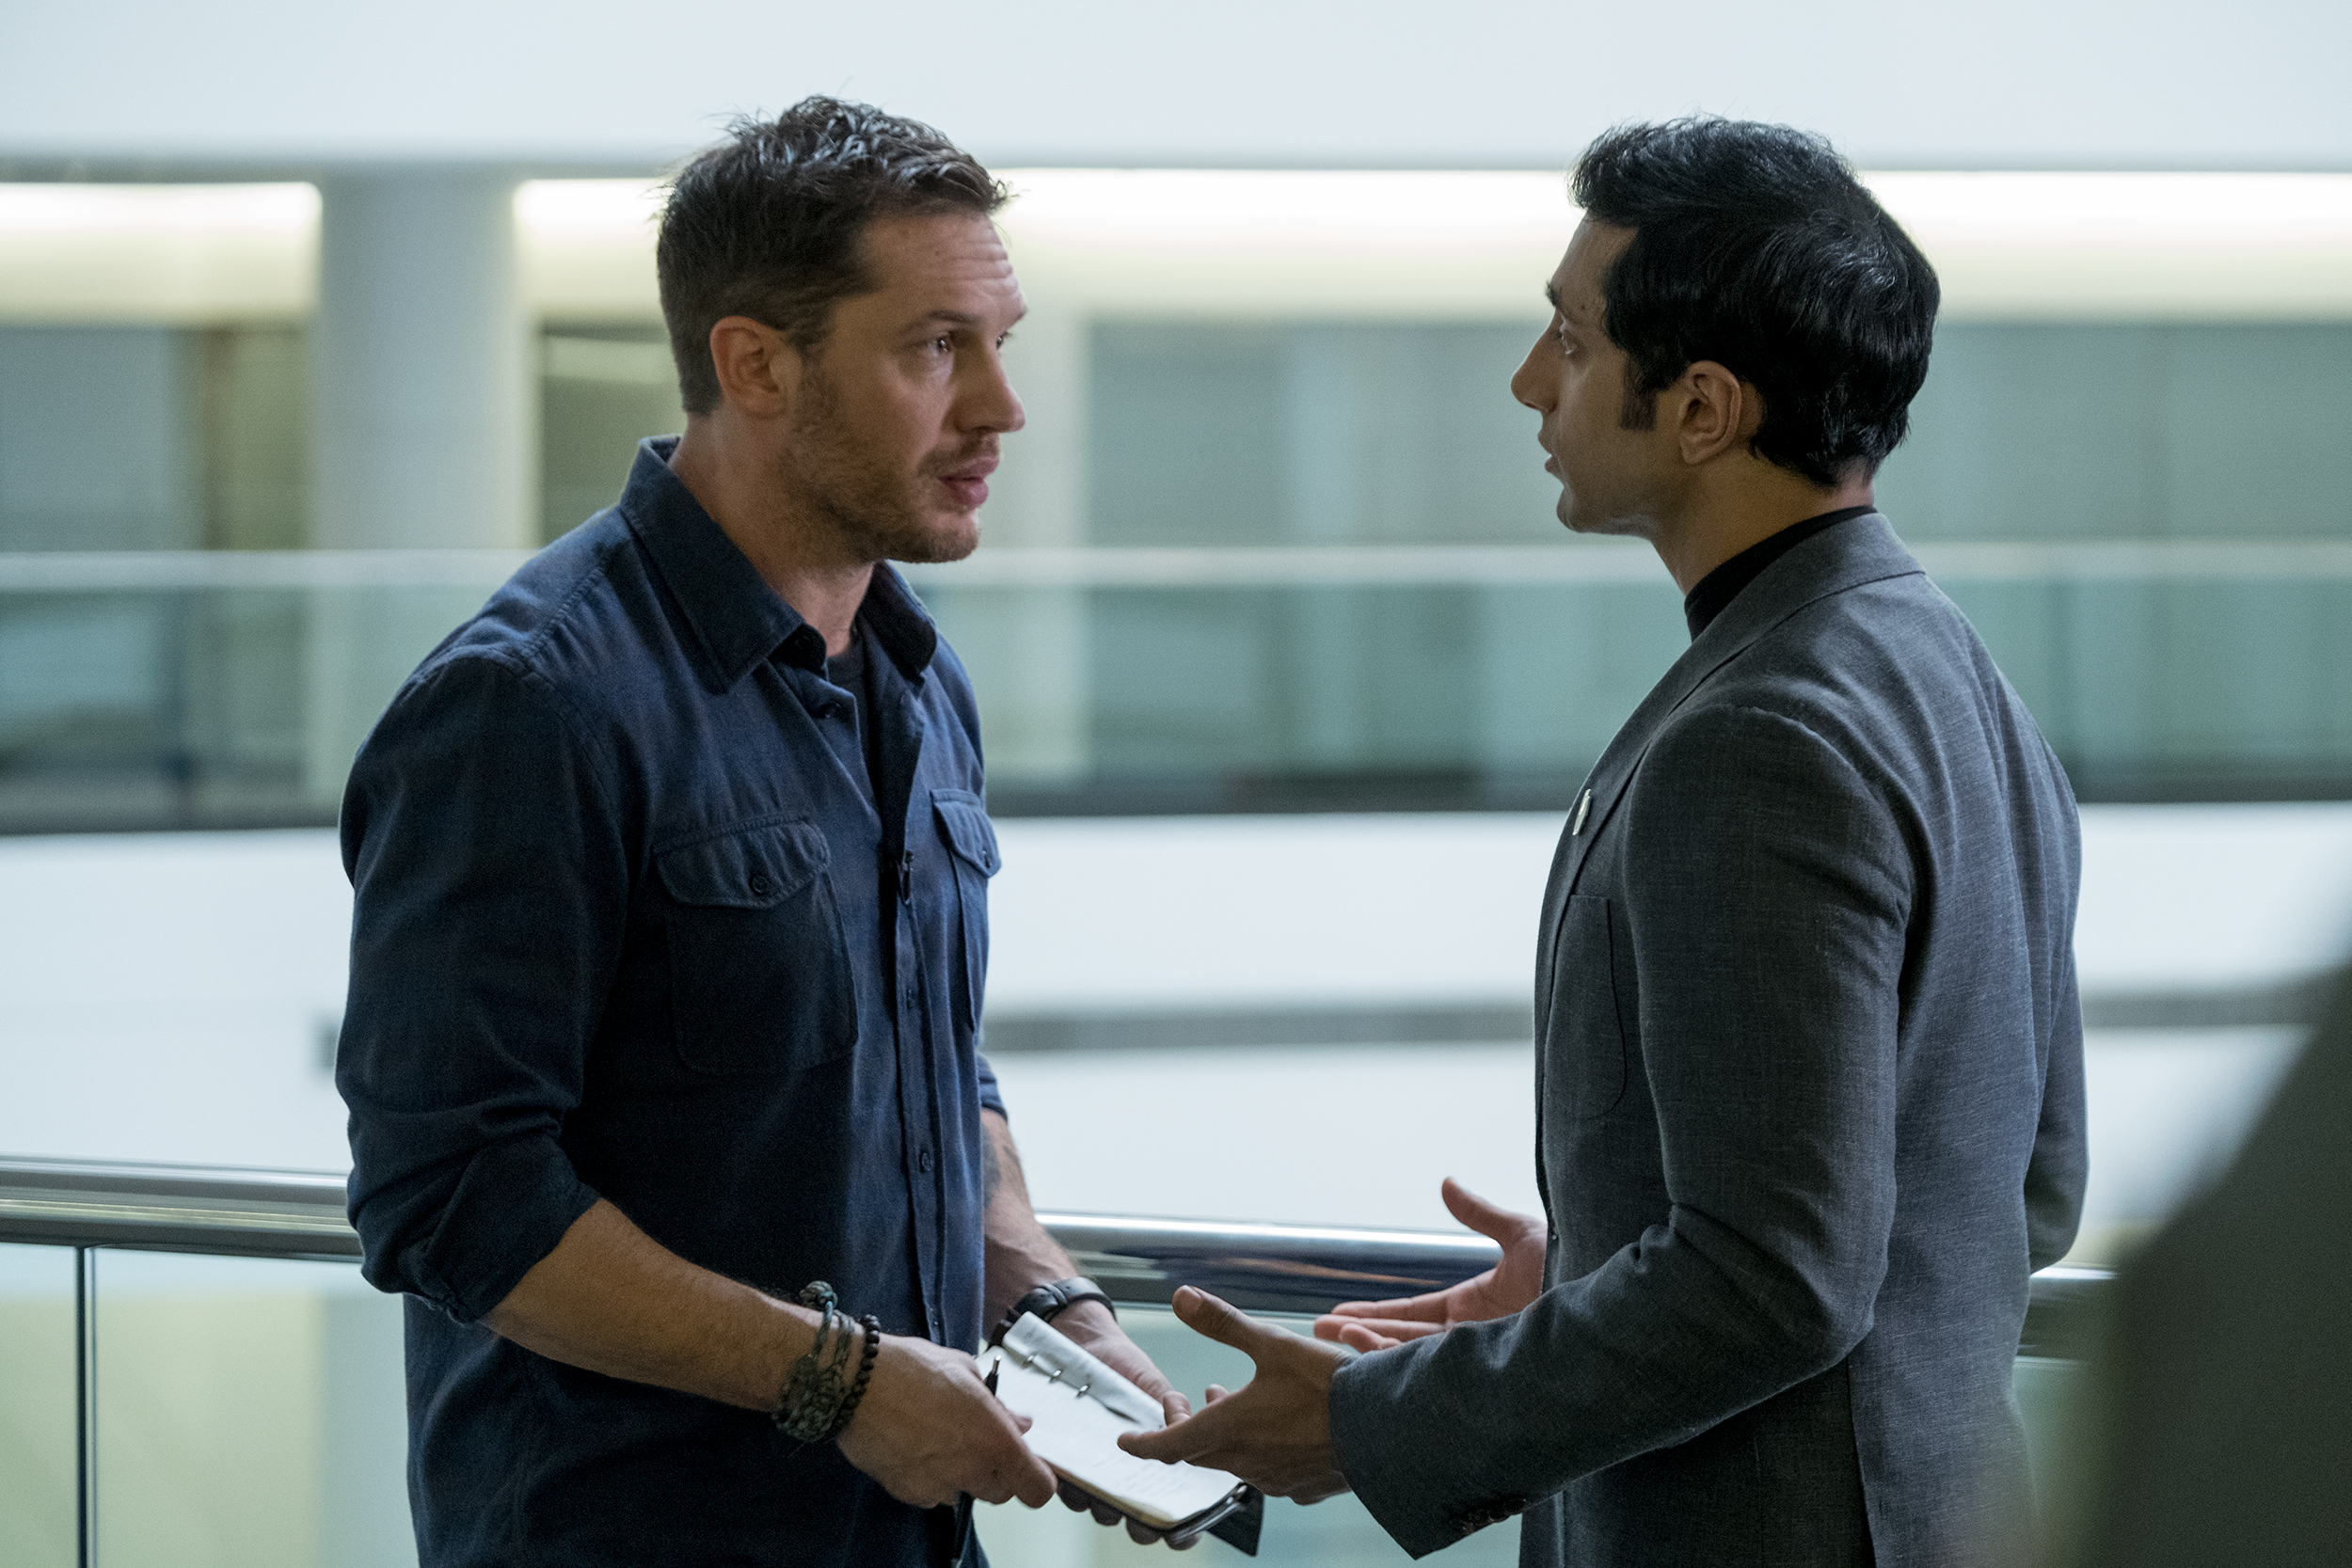 Two men (Tom Hardy, Riz Ahmed) talking to each other.